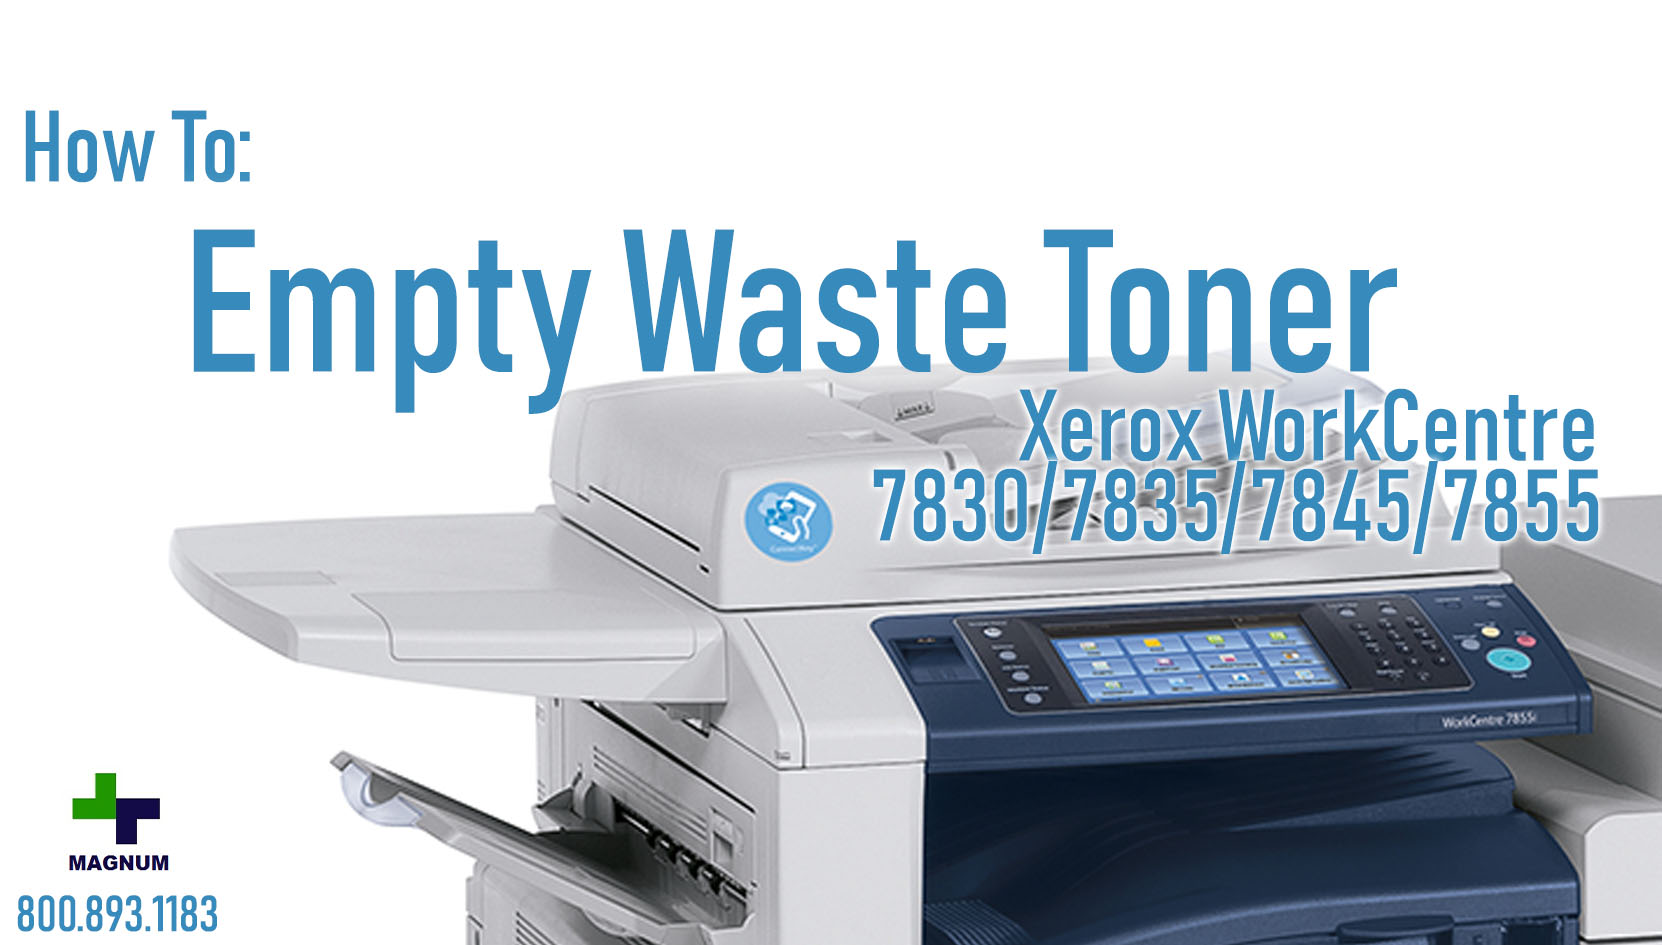 How To: Empty Waste Toner Container on WorkCentre 7830/7835/7845